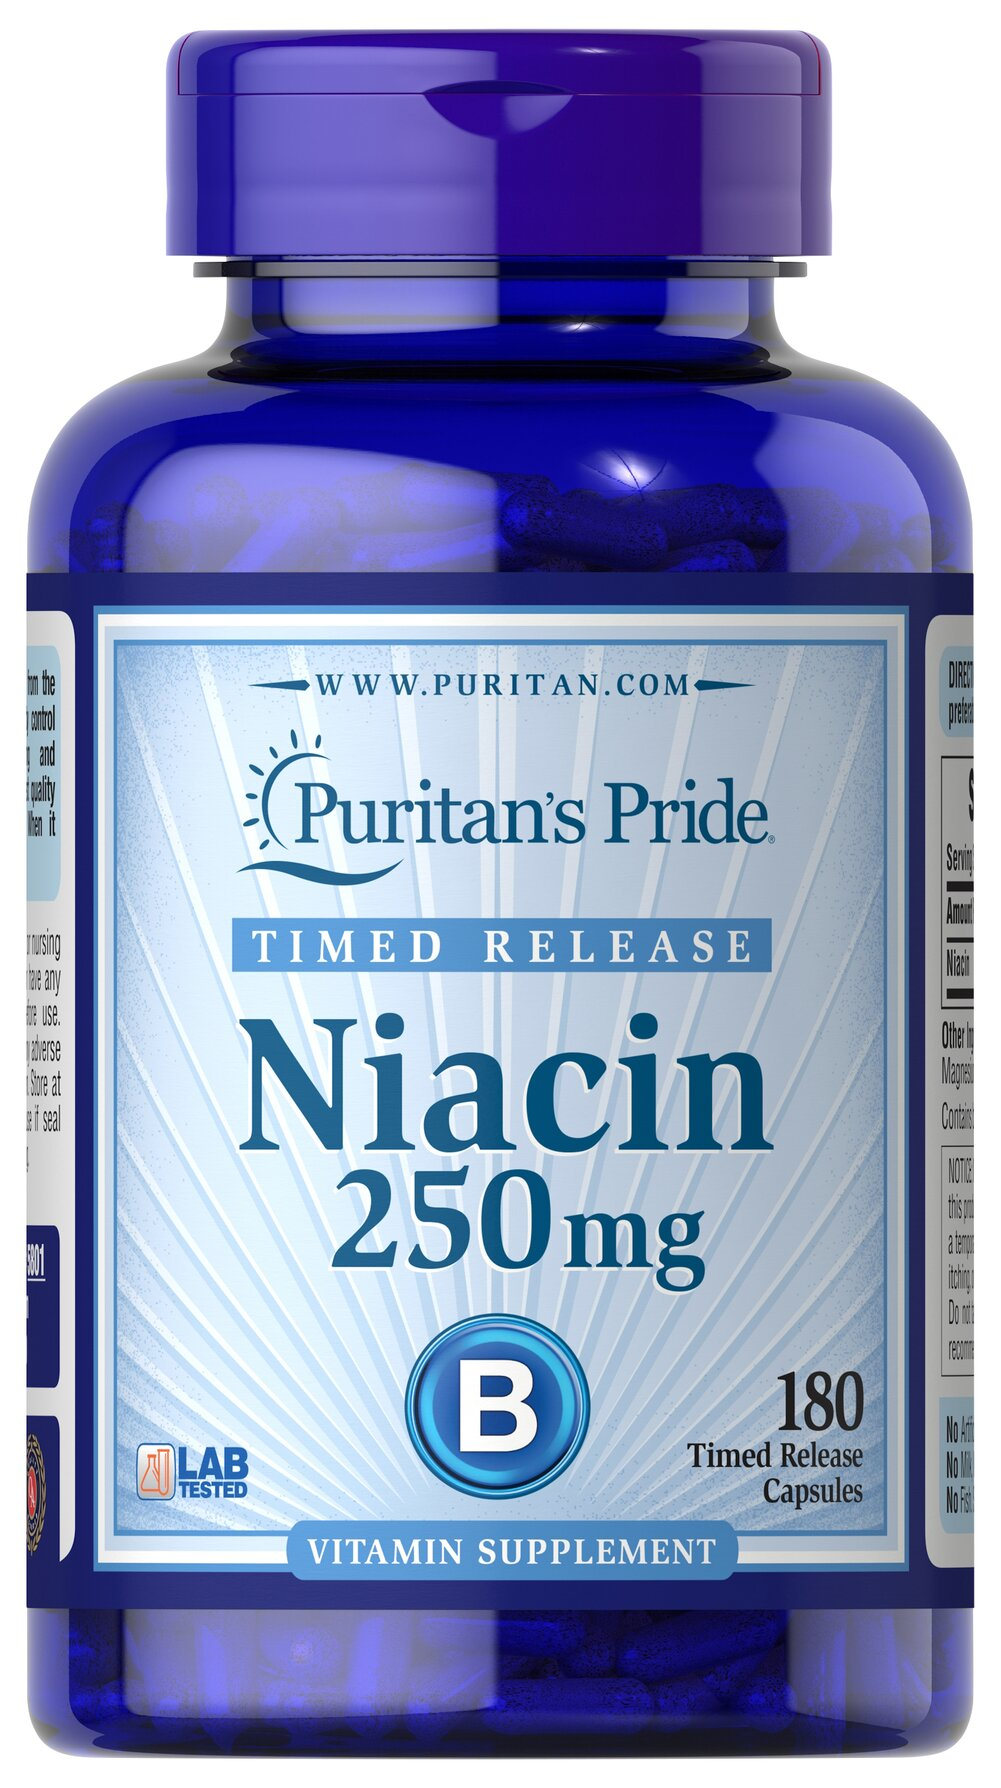 Niacin 250 mg Timed Release <p>Supports Energy Metabolism and Nervous System Health**</p><p>Laboratory Tested</p><p>Niacin is a B-Vitamin, which is part of a coenzyme needed for energy metabolism.** Niacin helps maintain healthy functions of the nervous system and skin.** This product is formulated to release Niacin over a prolonged period of time.</p> 180 Timed Release Capsules 250 mg $15.99